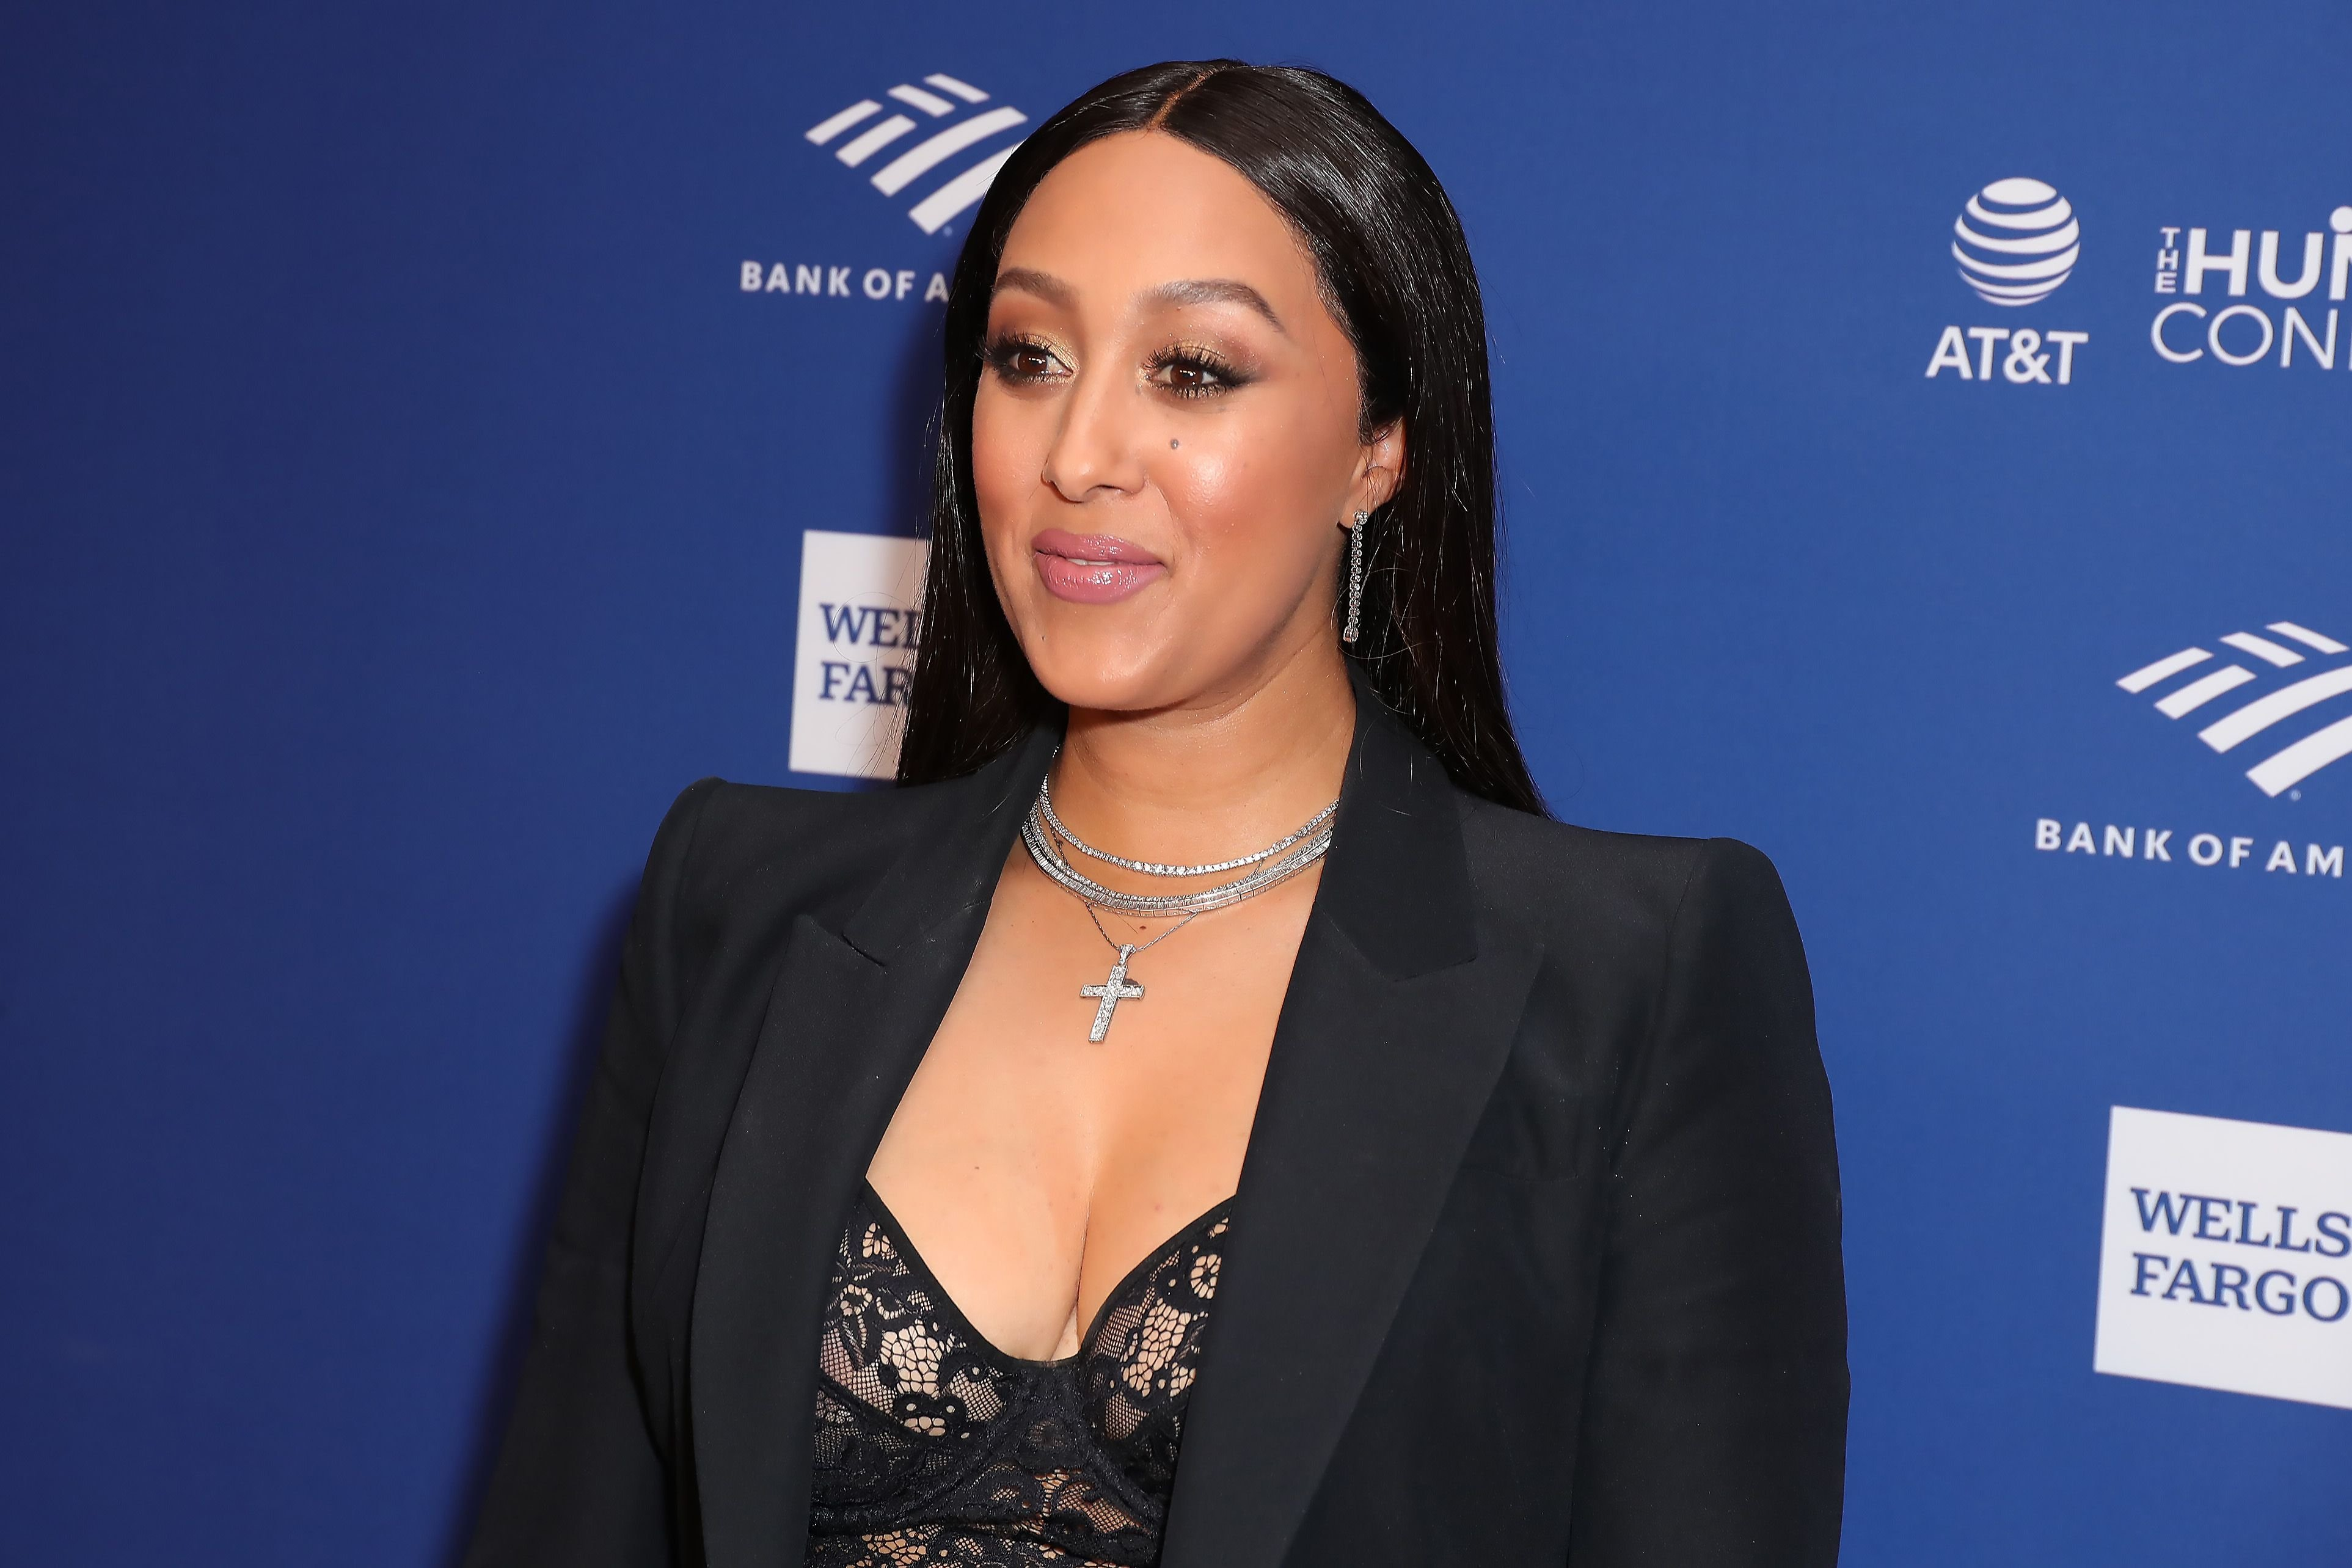 Tamera Mowry-Housley at the 51st NAACP Image Awards - non-televised awards dinner - arrivals on February 21, 2020 in Hollywood, California | Photo: Getty Images